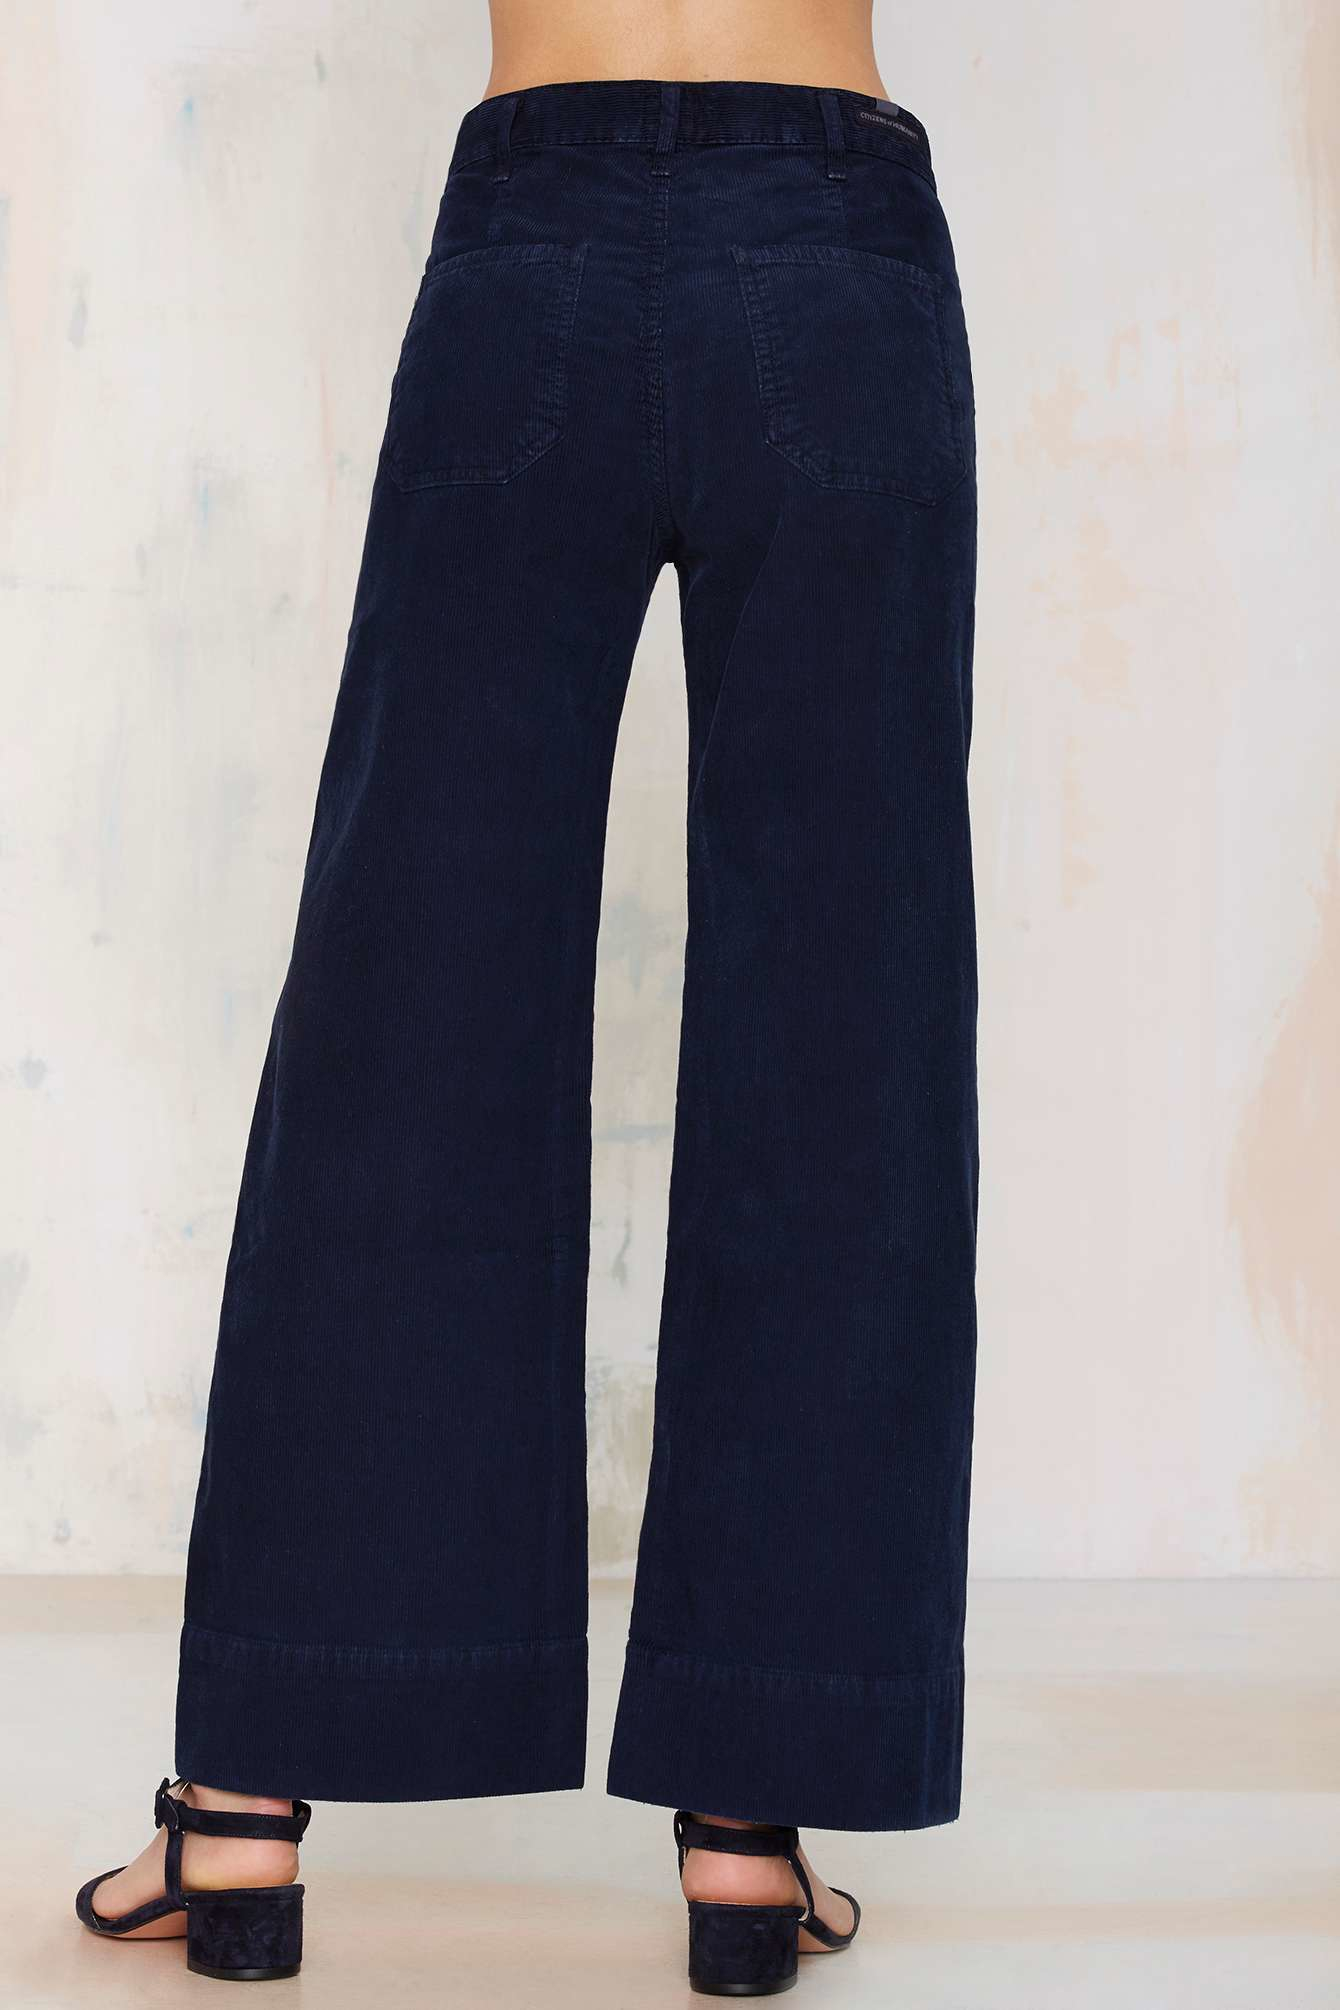 lyst citizens of humanity abigail wide leg corduroy pants in blue. Black Bedroom Furniture Sets. Home Design Ideas